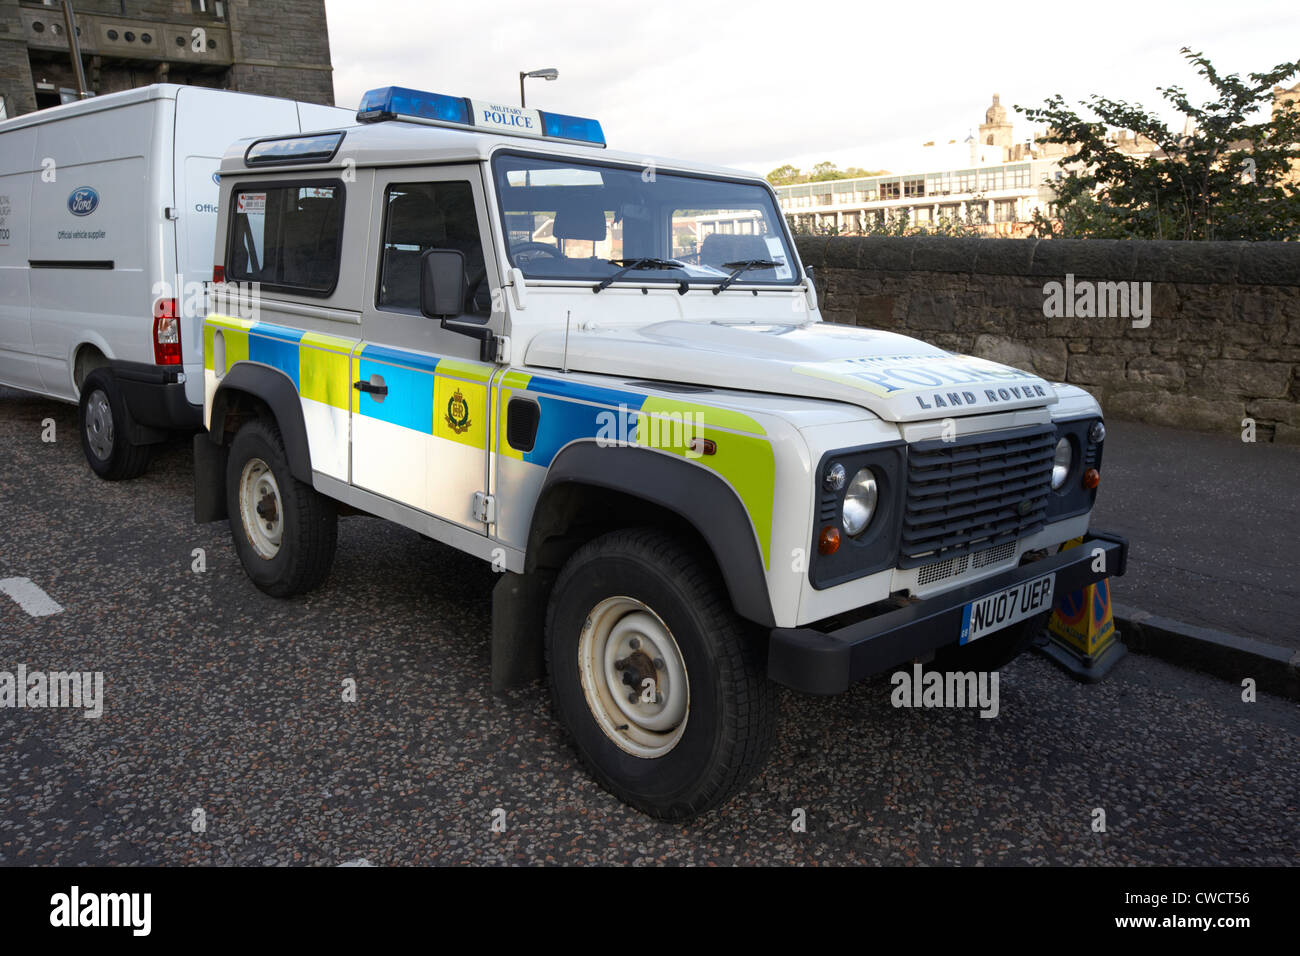 British Army Military Police Landrover Patrol Car With